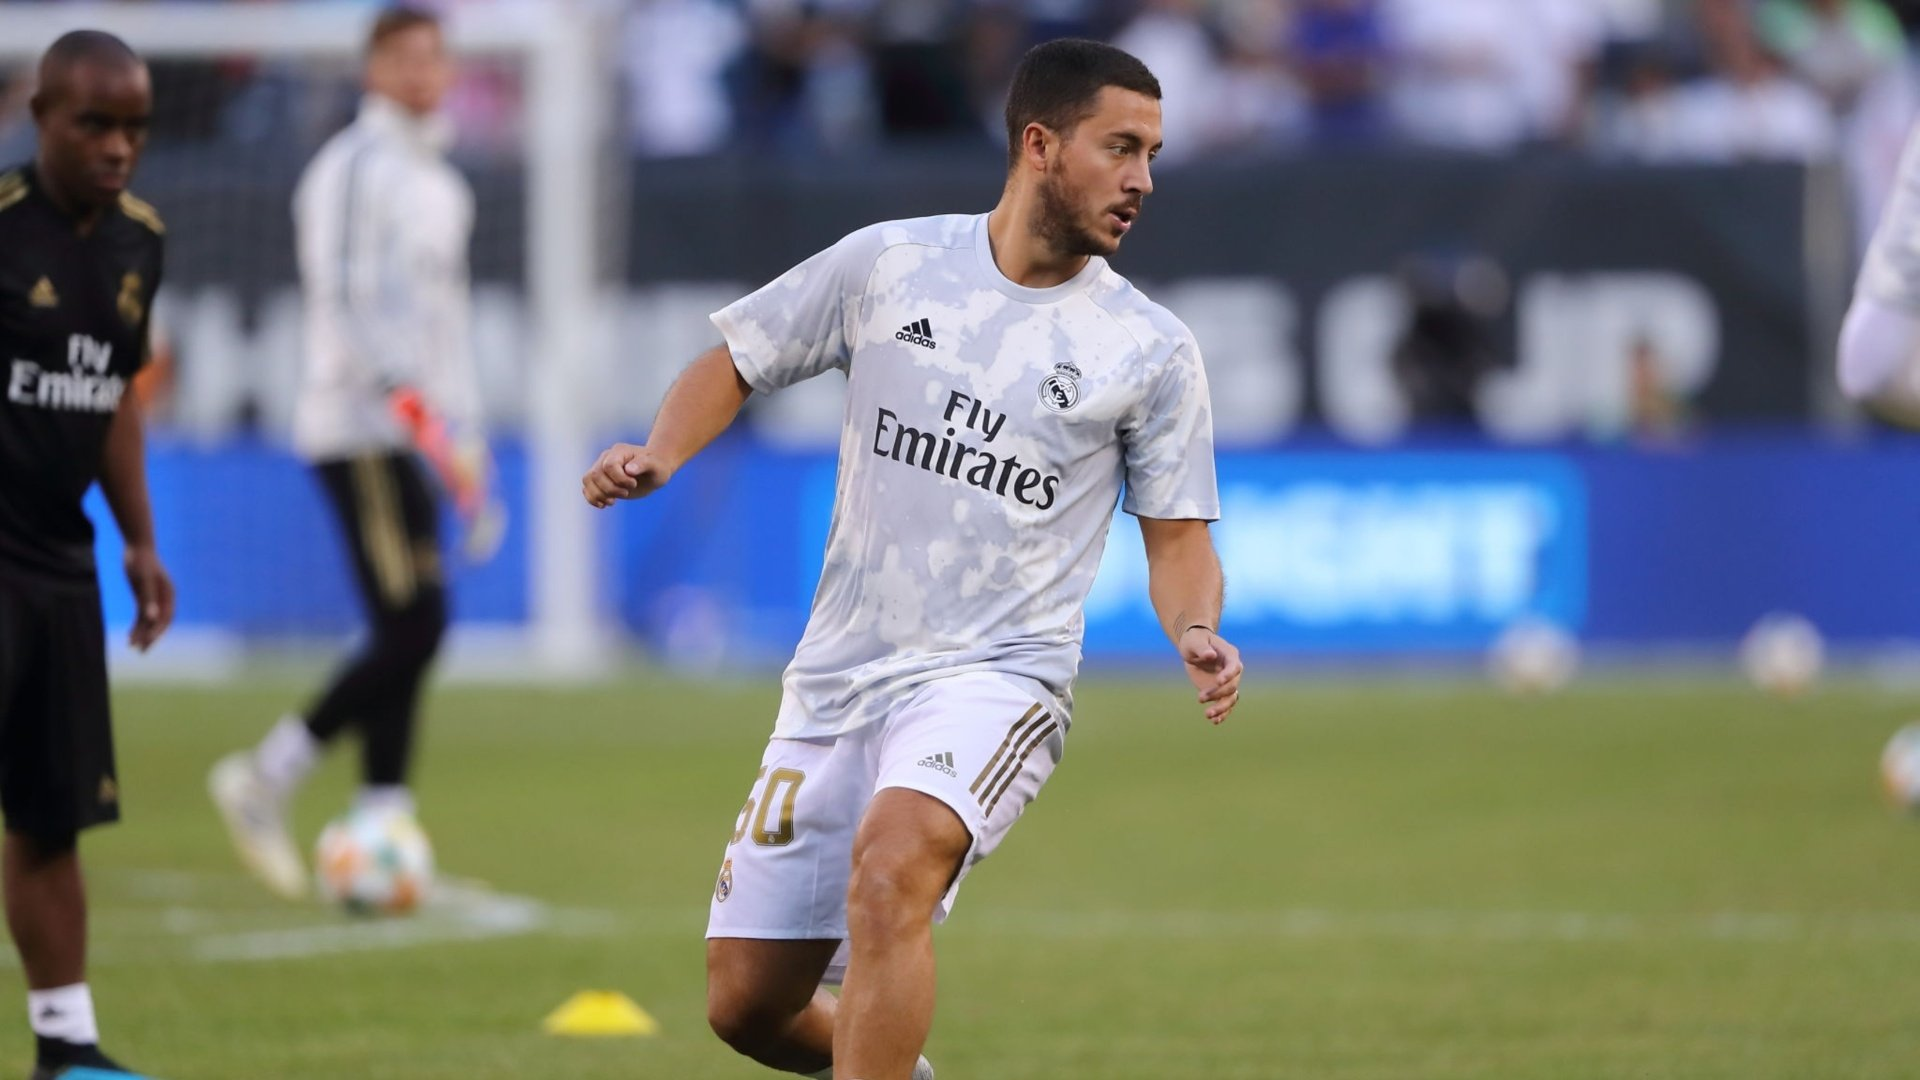 BREAKING: Hazard will miss Celta Vigo game with hamstring injury